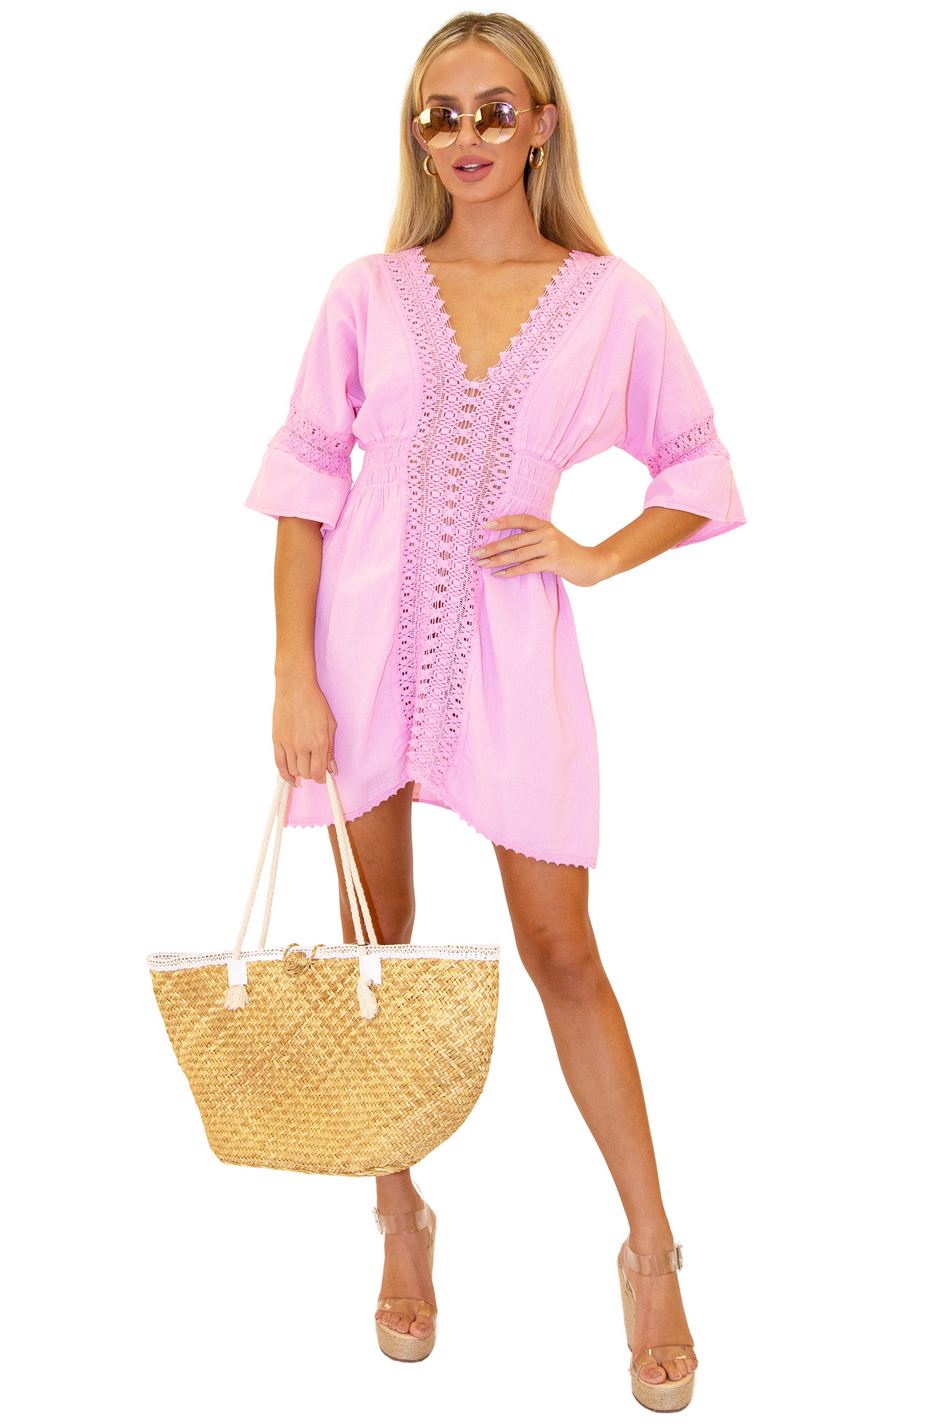 NW1085 - Pink Cotton Dress